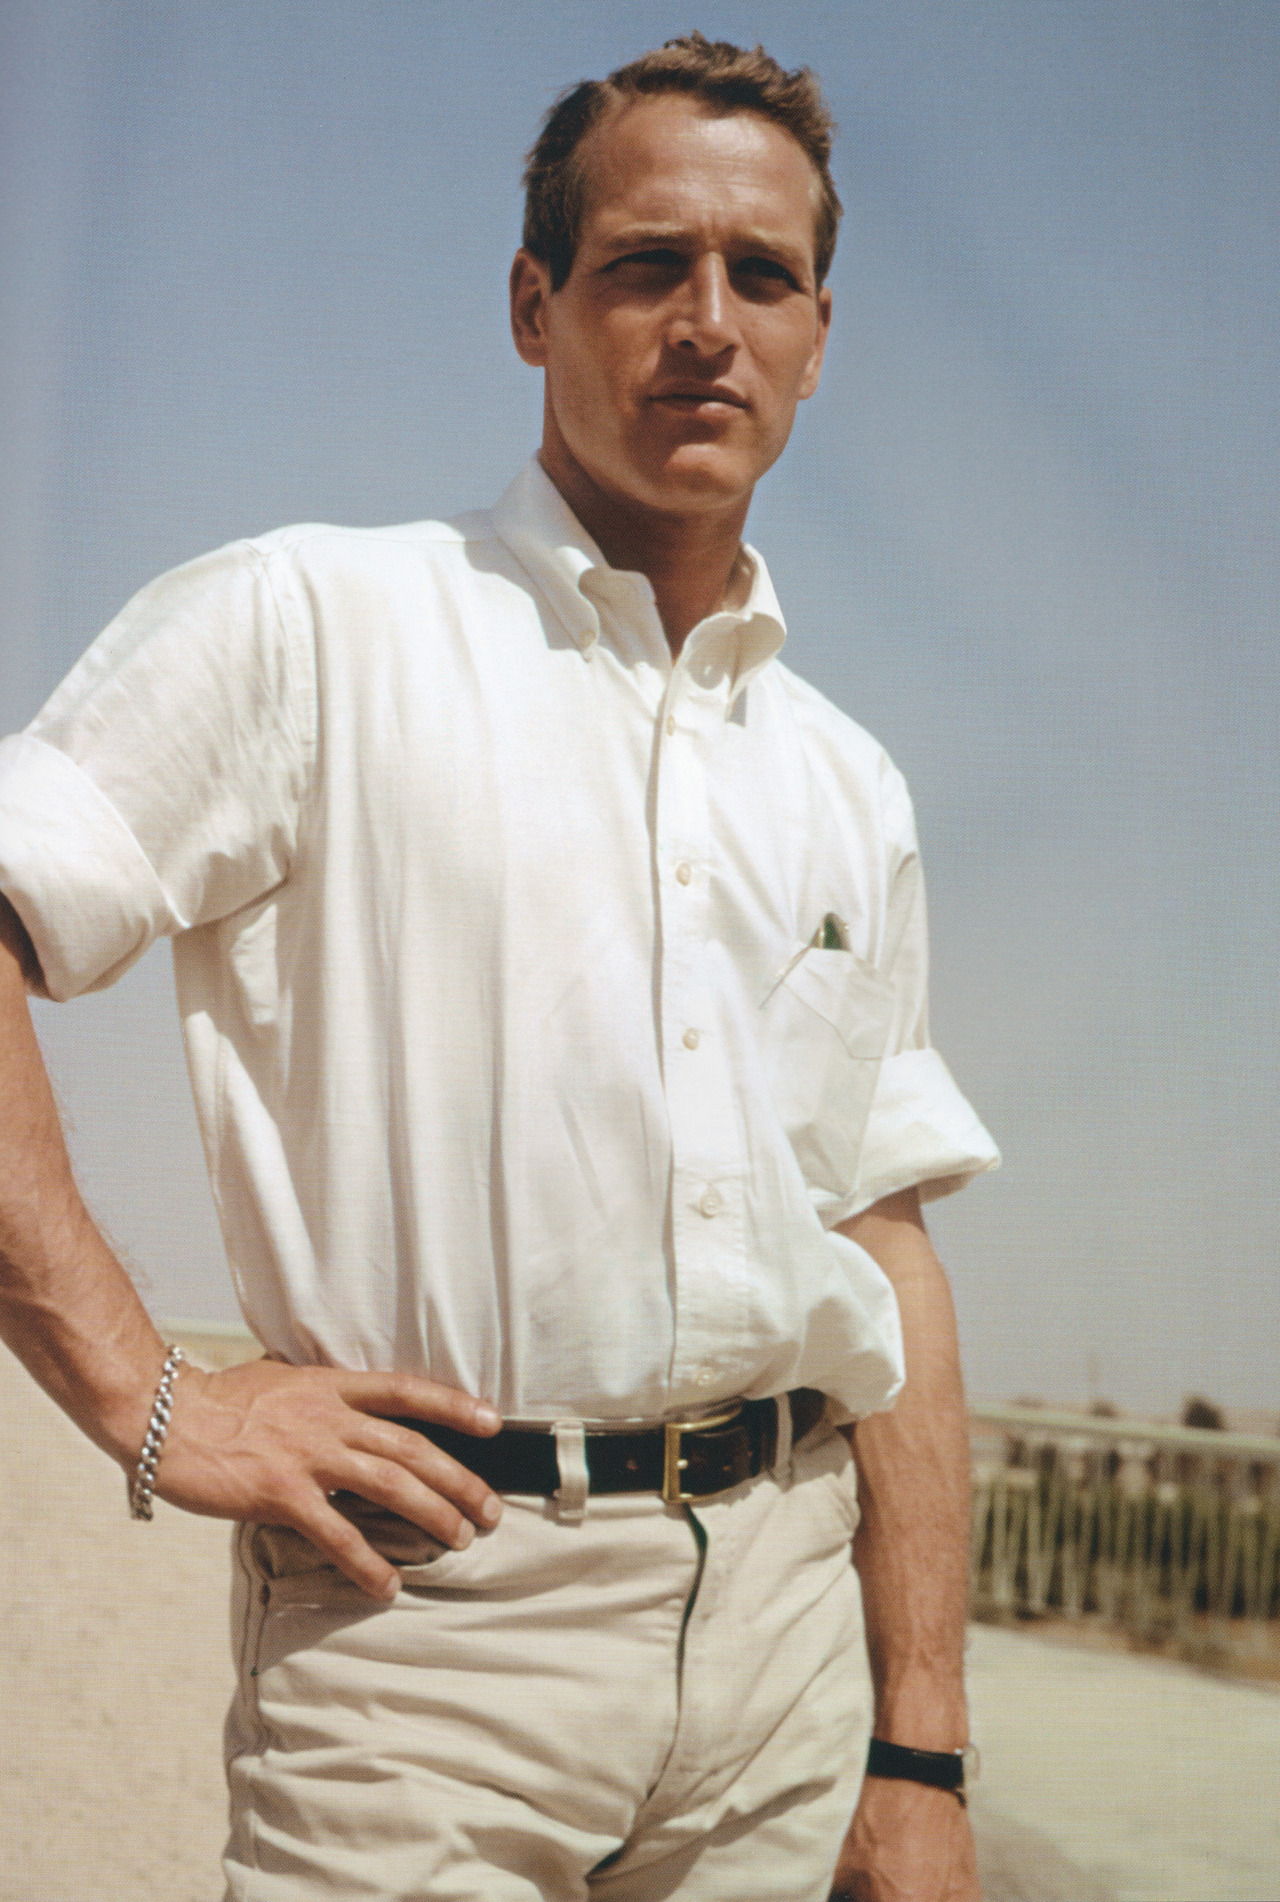 voxsart:  Natural Partners: Rolled Collar and Rolled Sleeves. Paul Newman.